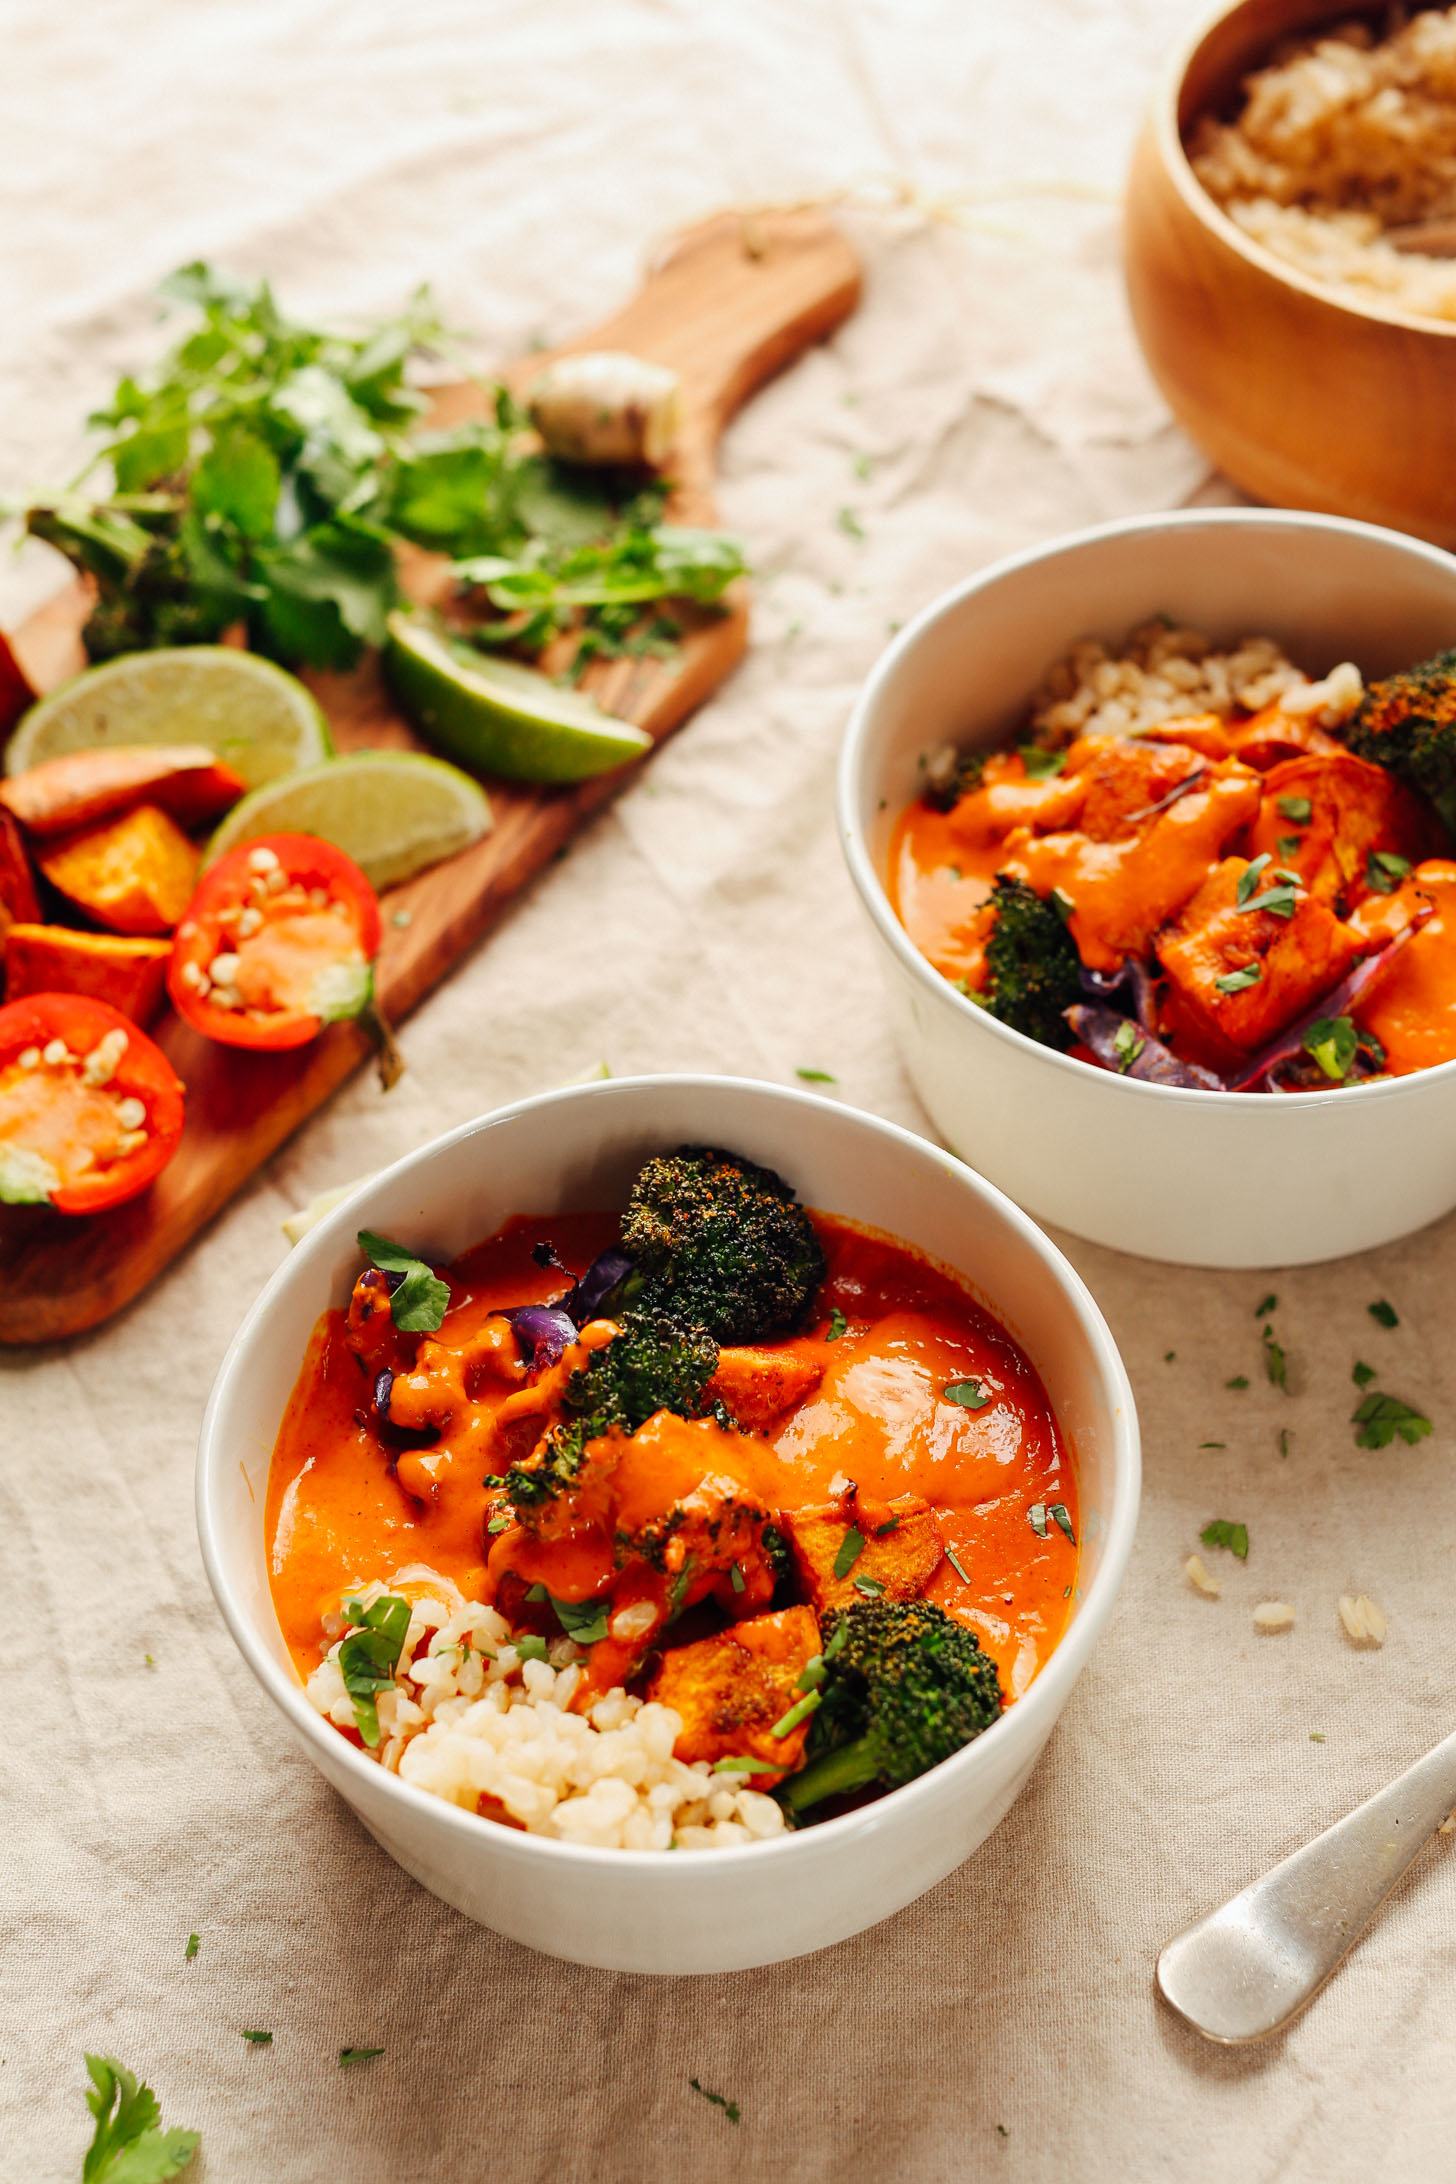 Bowls of Rich Red Curry with Roasted Vegetables alongside a cutting board with fresh limes, peppers, and herbs for serving